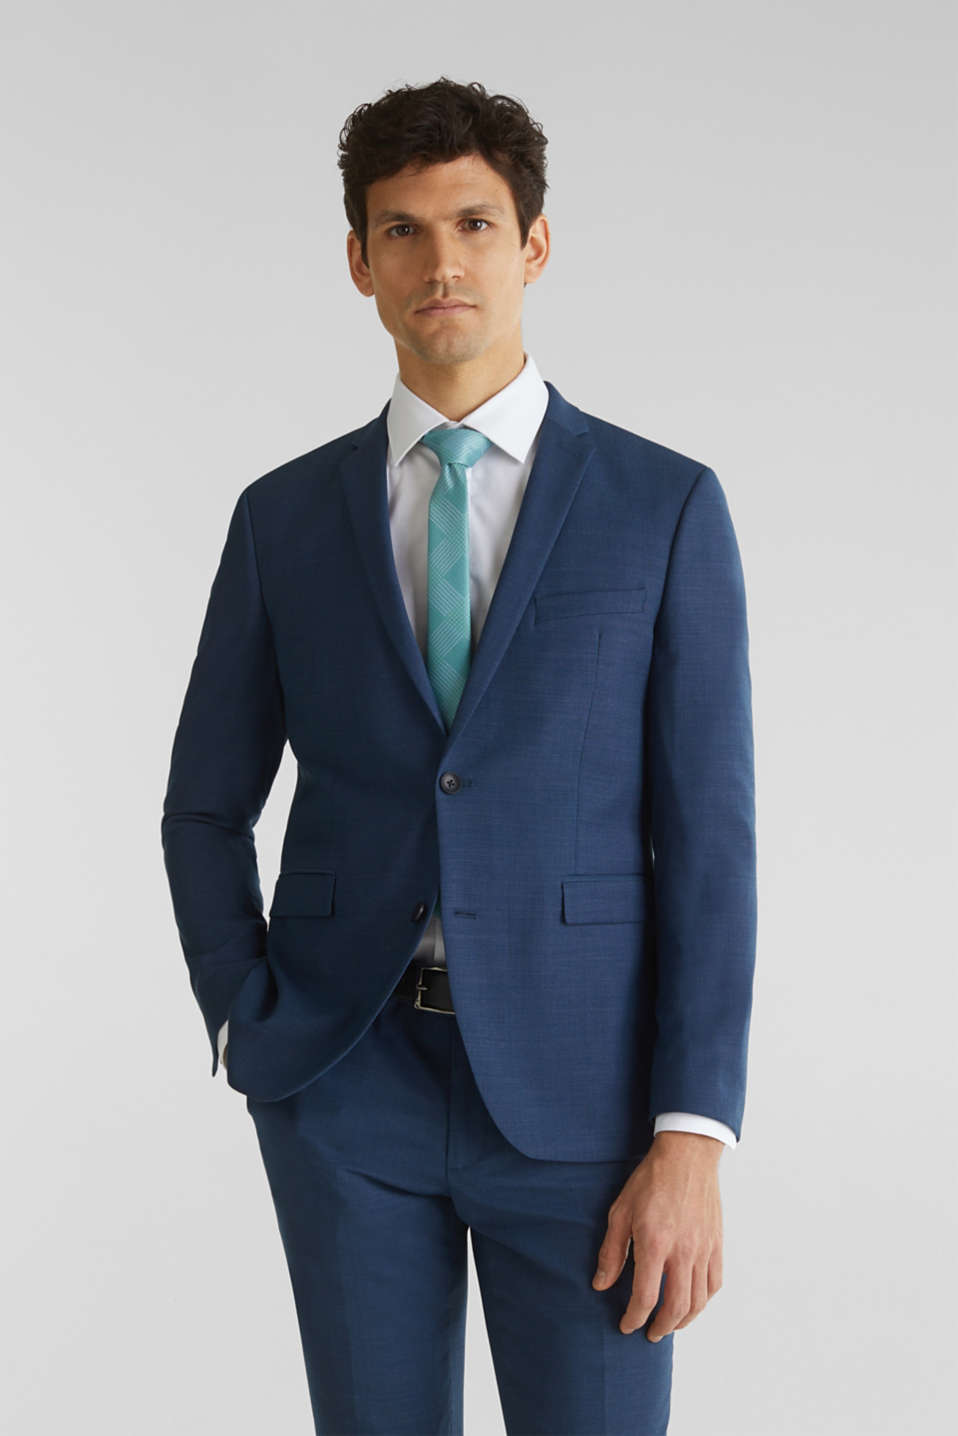 Esprit - BLUE WOOL mix + match: sports jacket